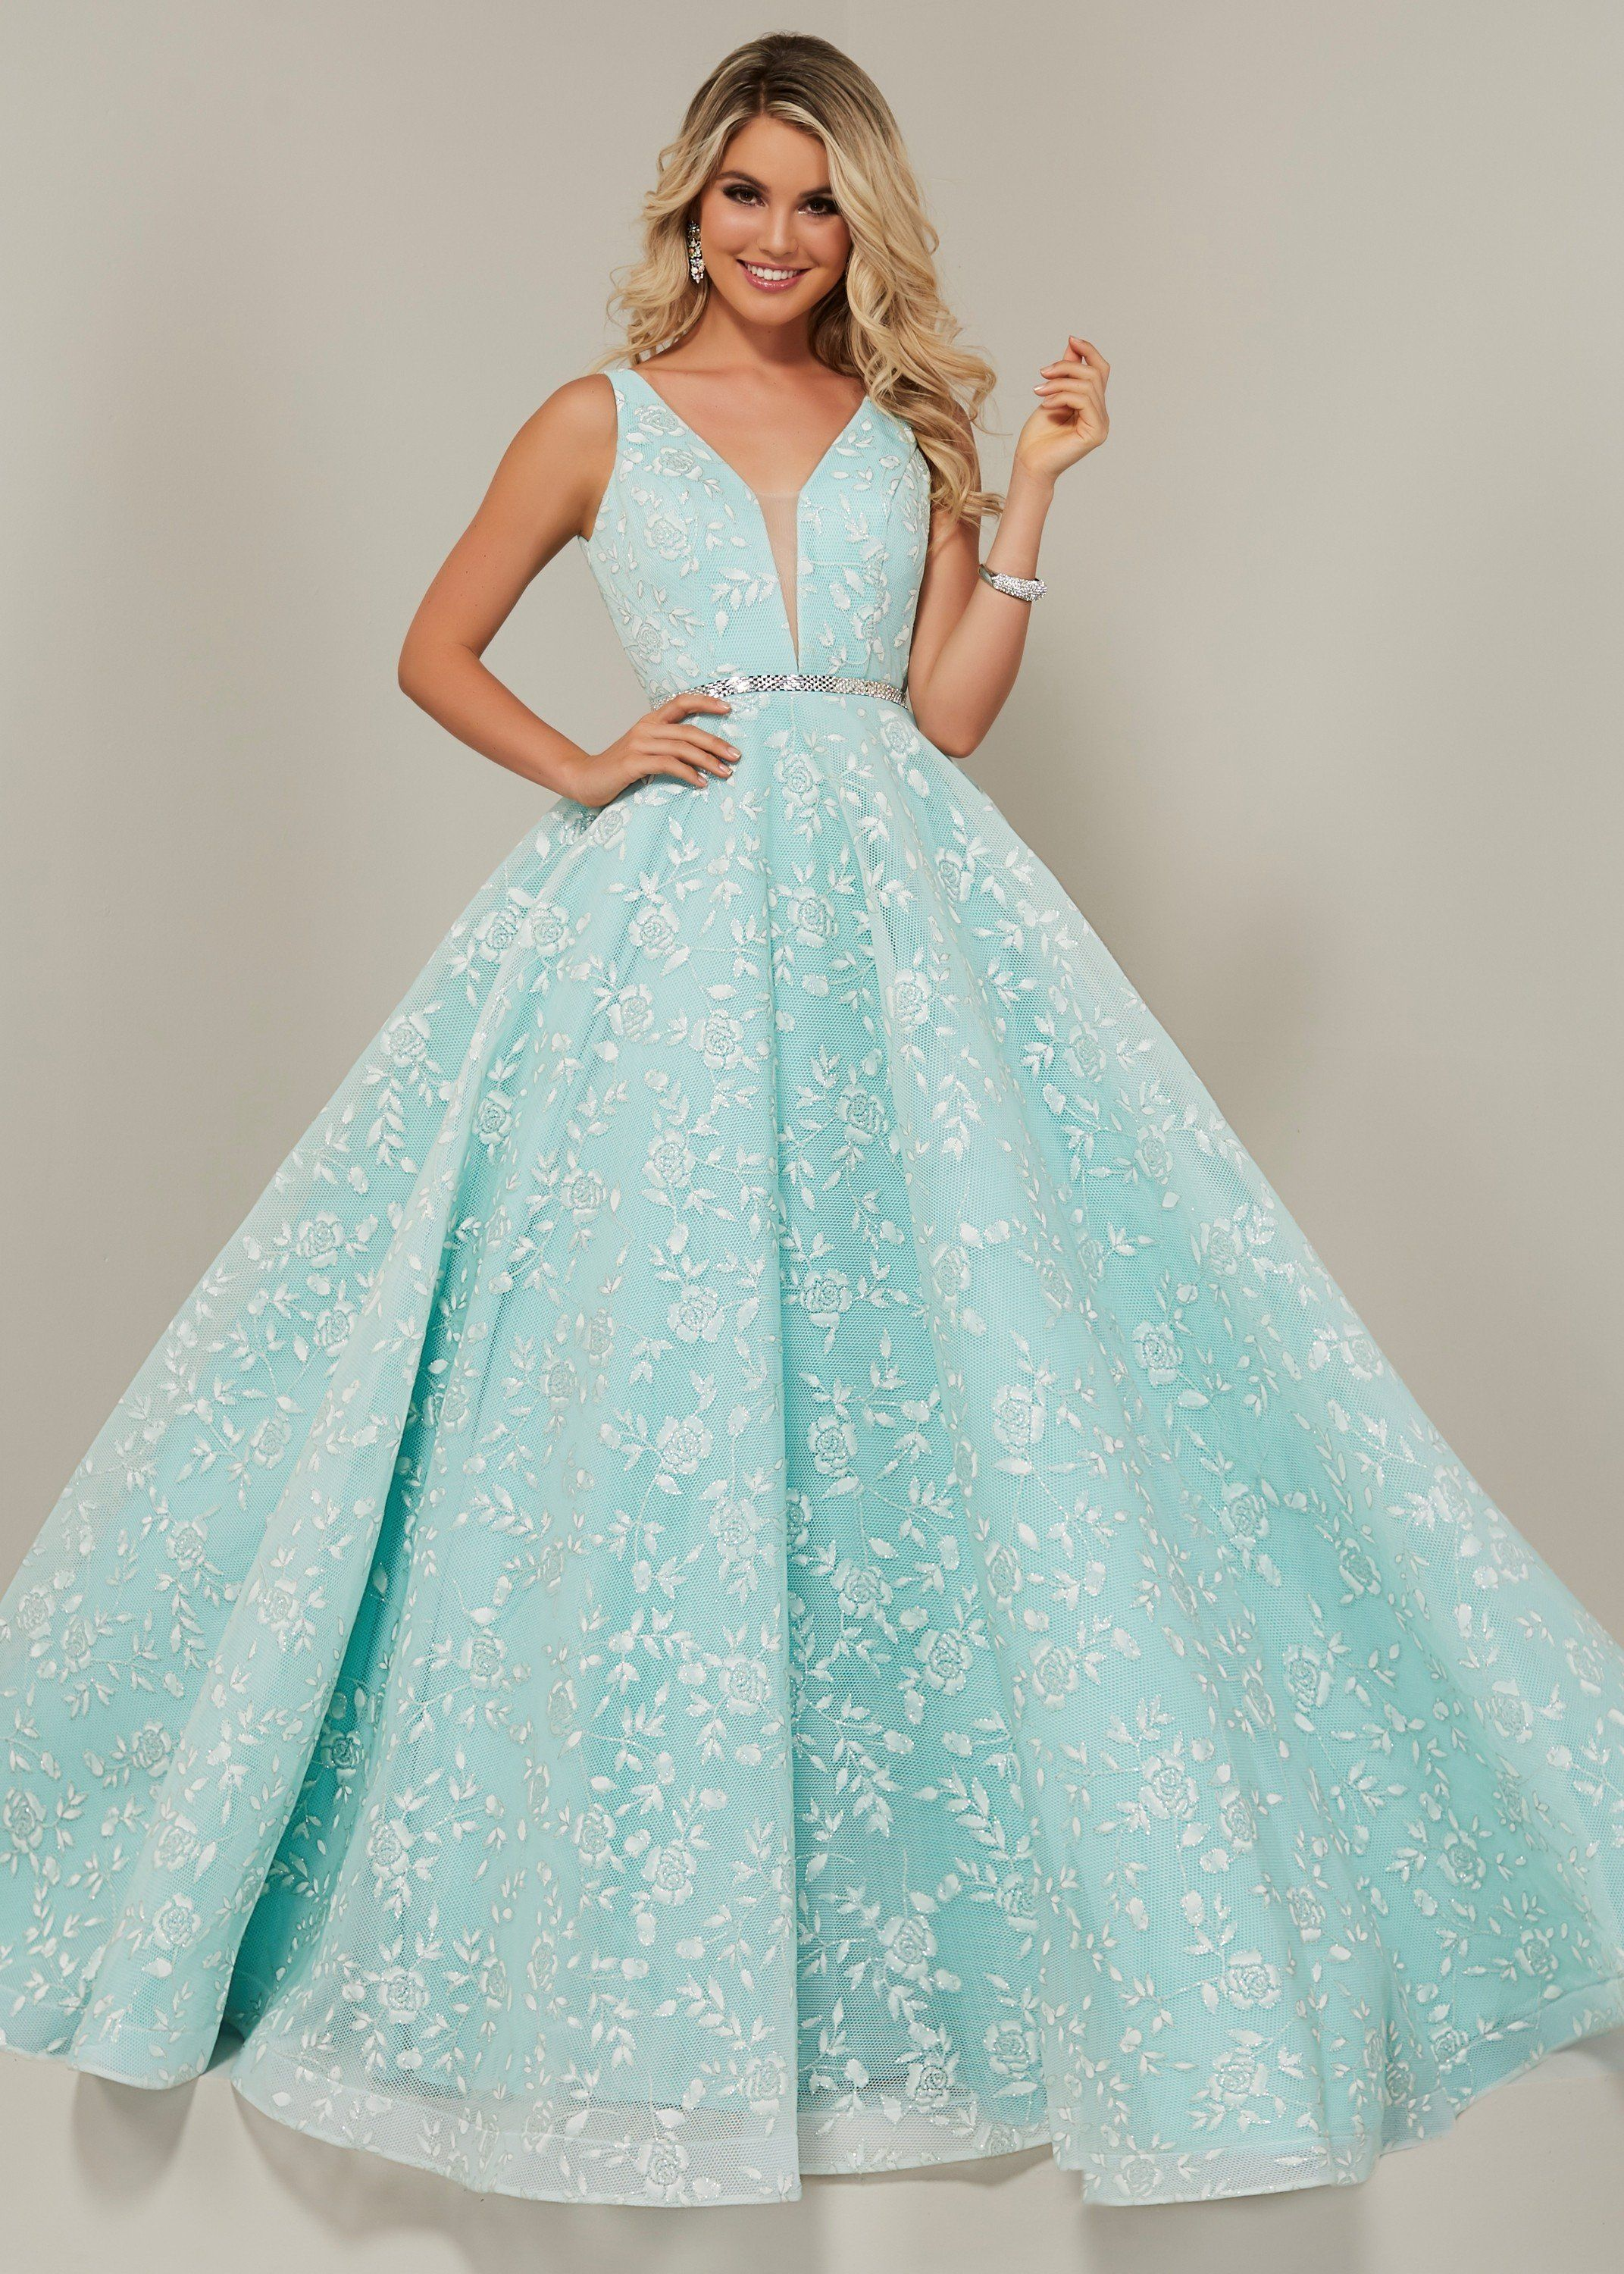 c6dec219e9076 Tiffany Designs 16325 Plunge Neck Floral Ball Gown in 2019